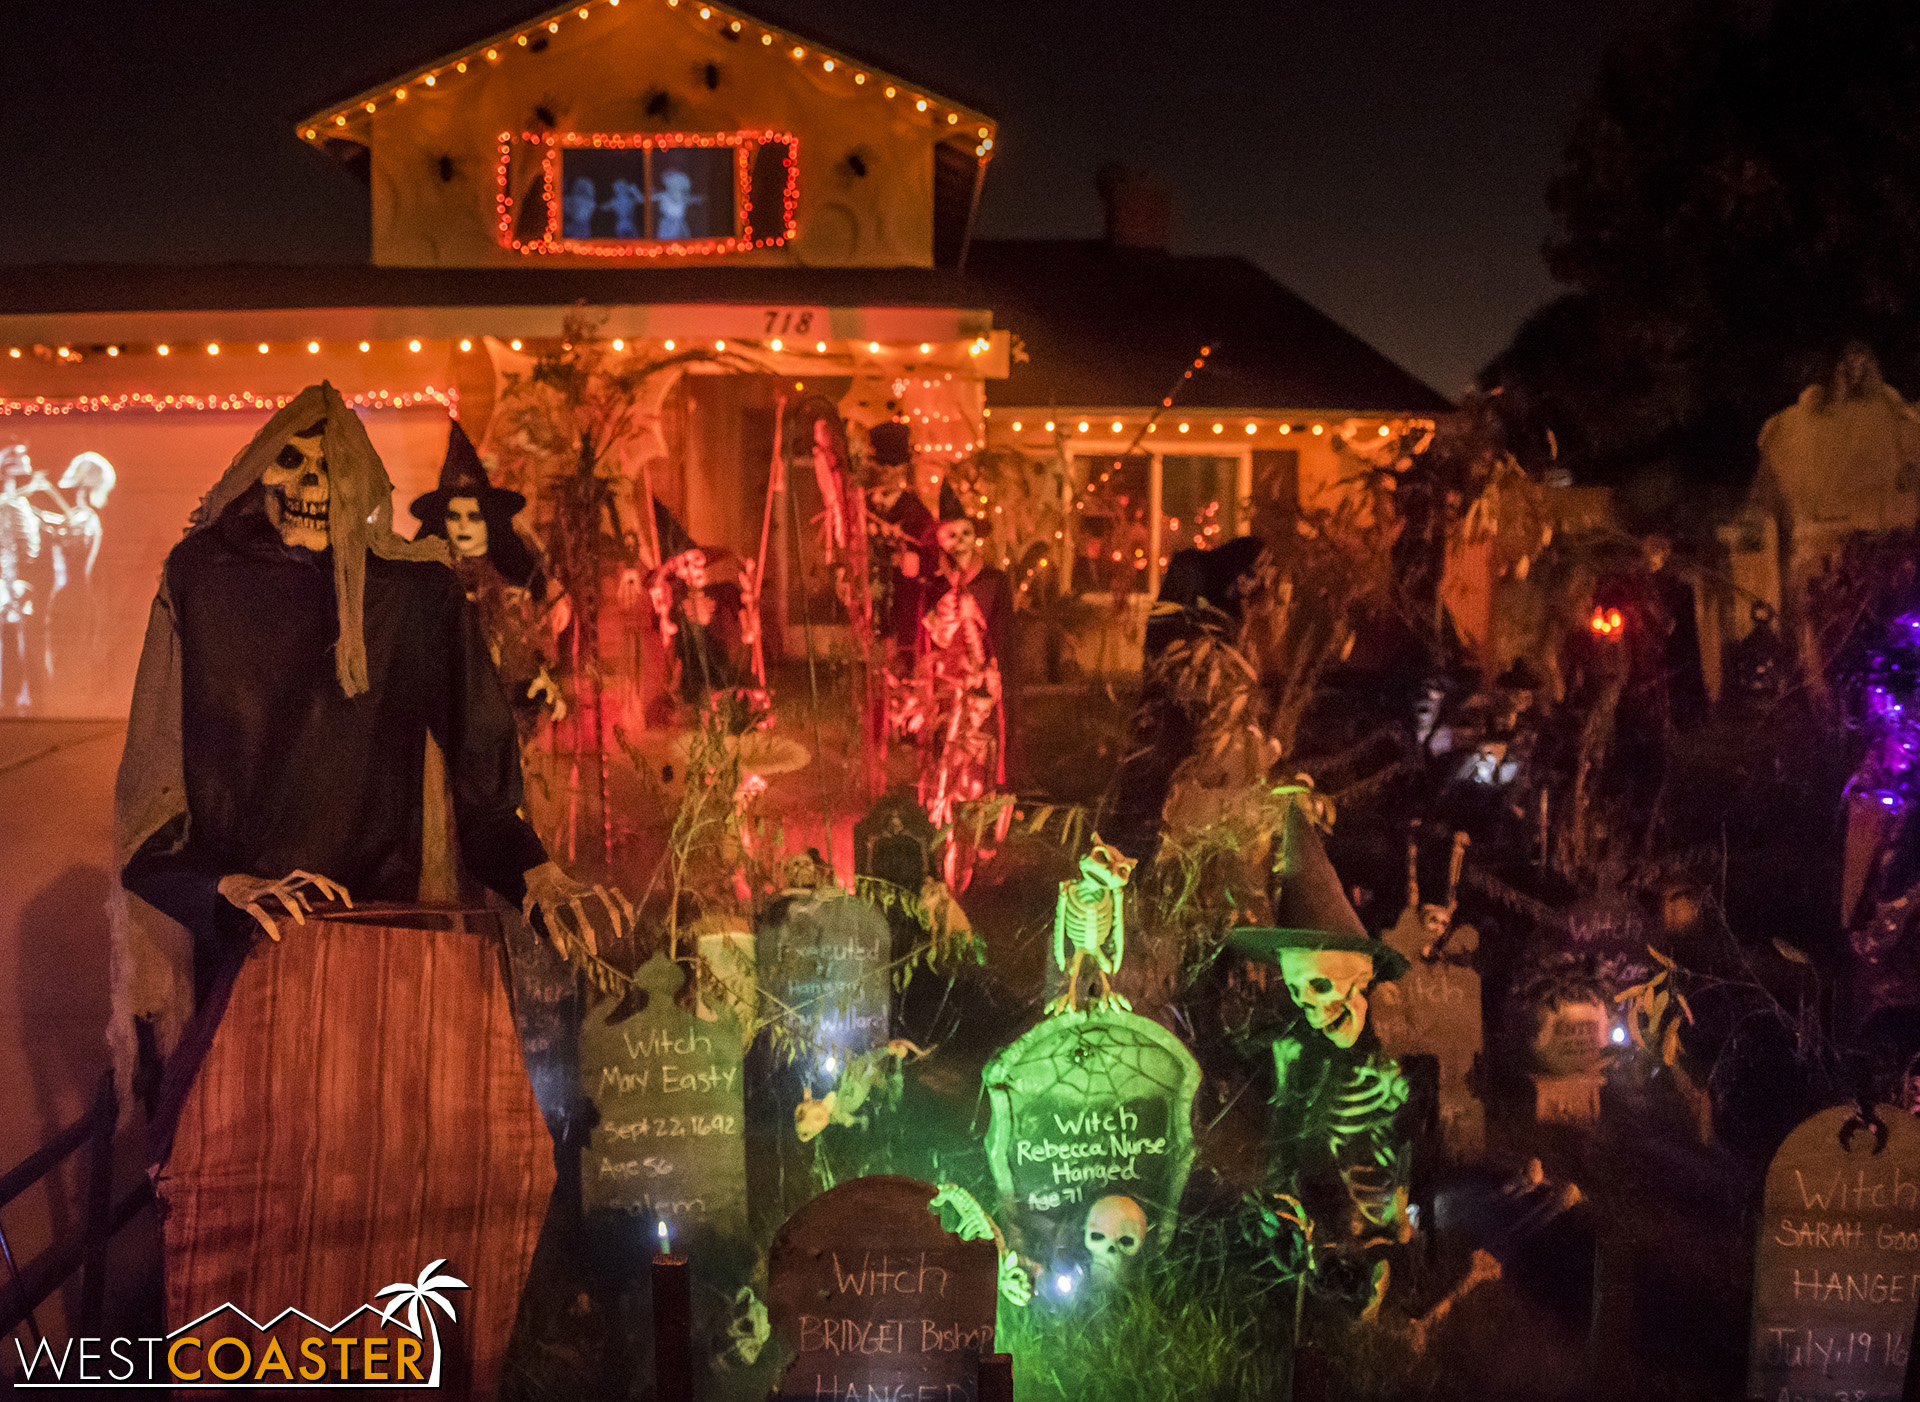 The Haunt on Hibiscus features a plethora of Halloween theming, just on its front lawn!